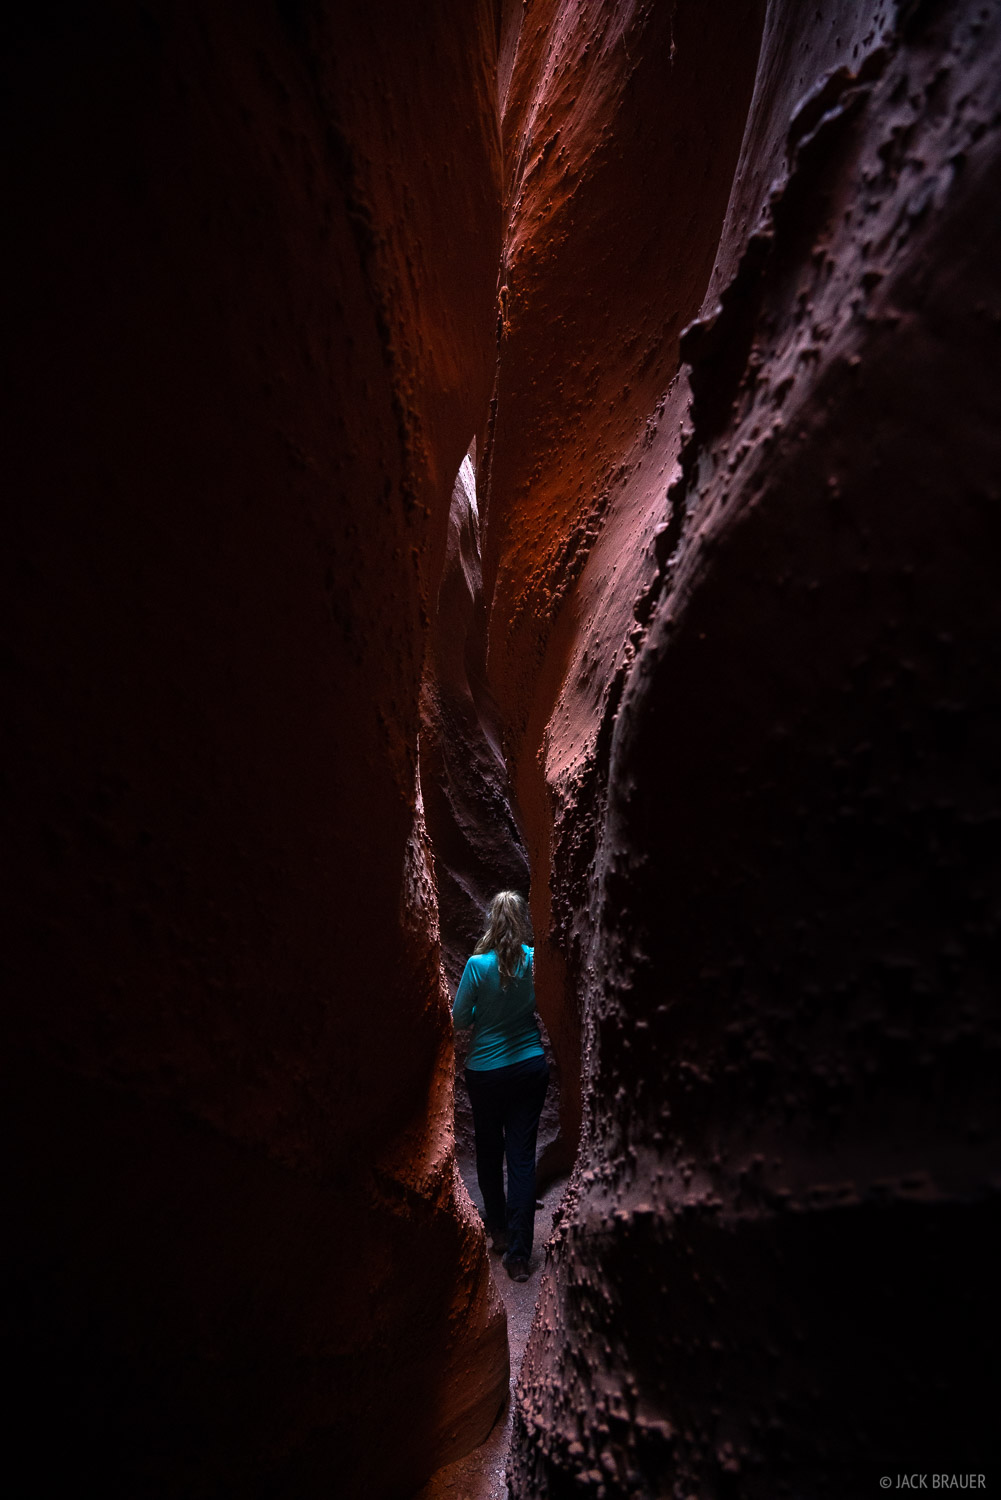 Grand Staircase - Escalante National Monument, Spooky Canyon, Utah, hiking, Escalante, photo